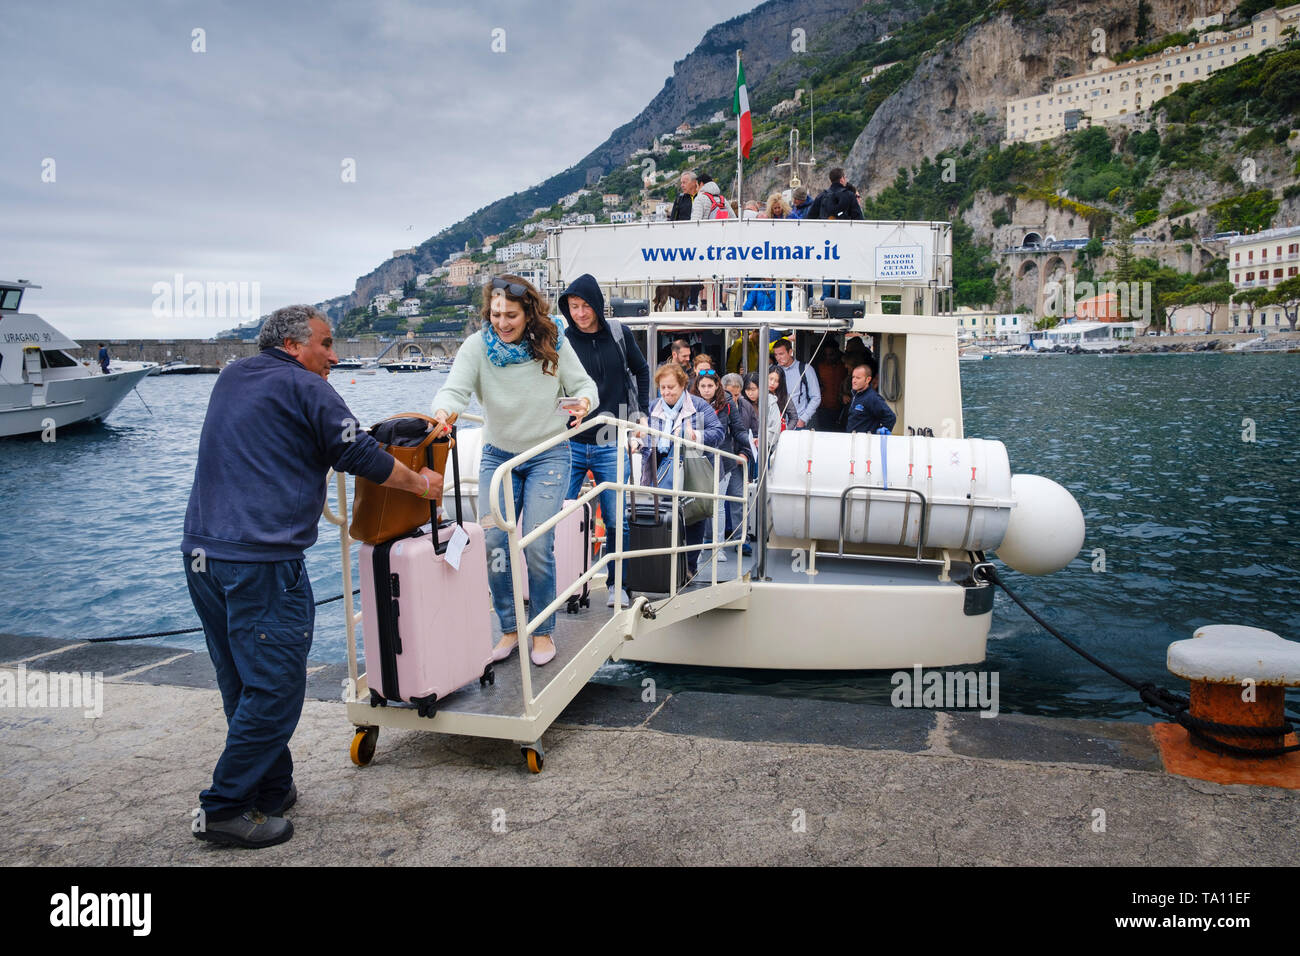 Boat transport. Woman tourist with luggage and other passengers disembarking from a Travelmar Ferry at the harbour in Amalfi on the Amalfi Coast. - Stock Image